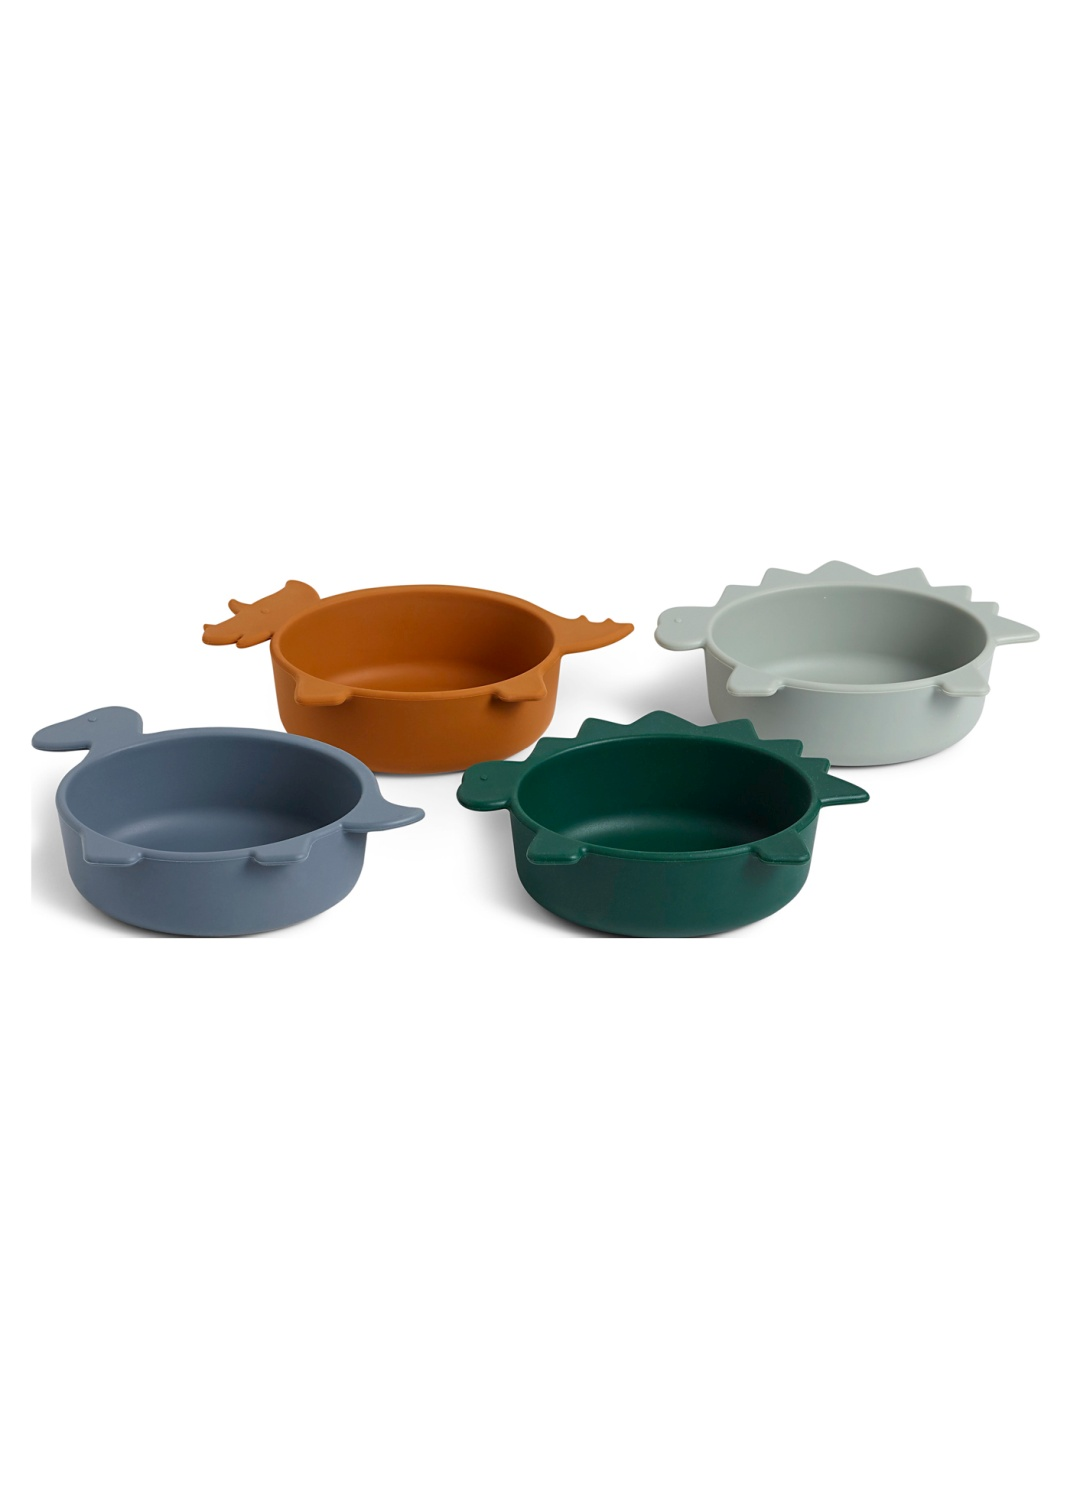 Iggy silicone bowls - 4 pack image number 0